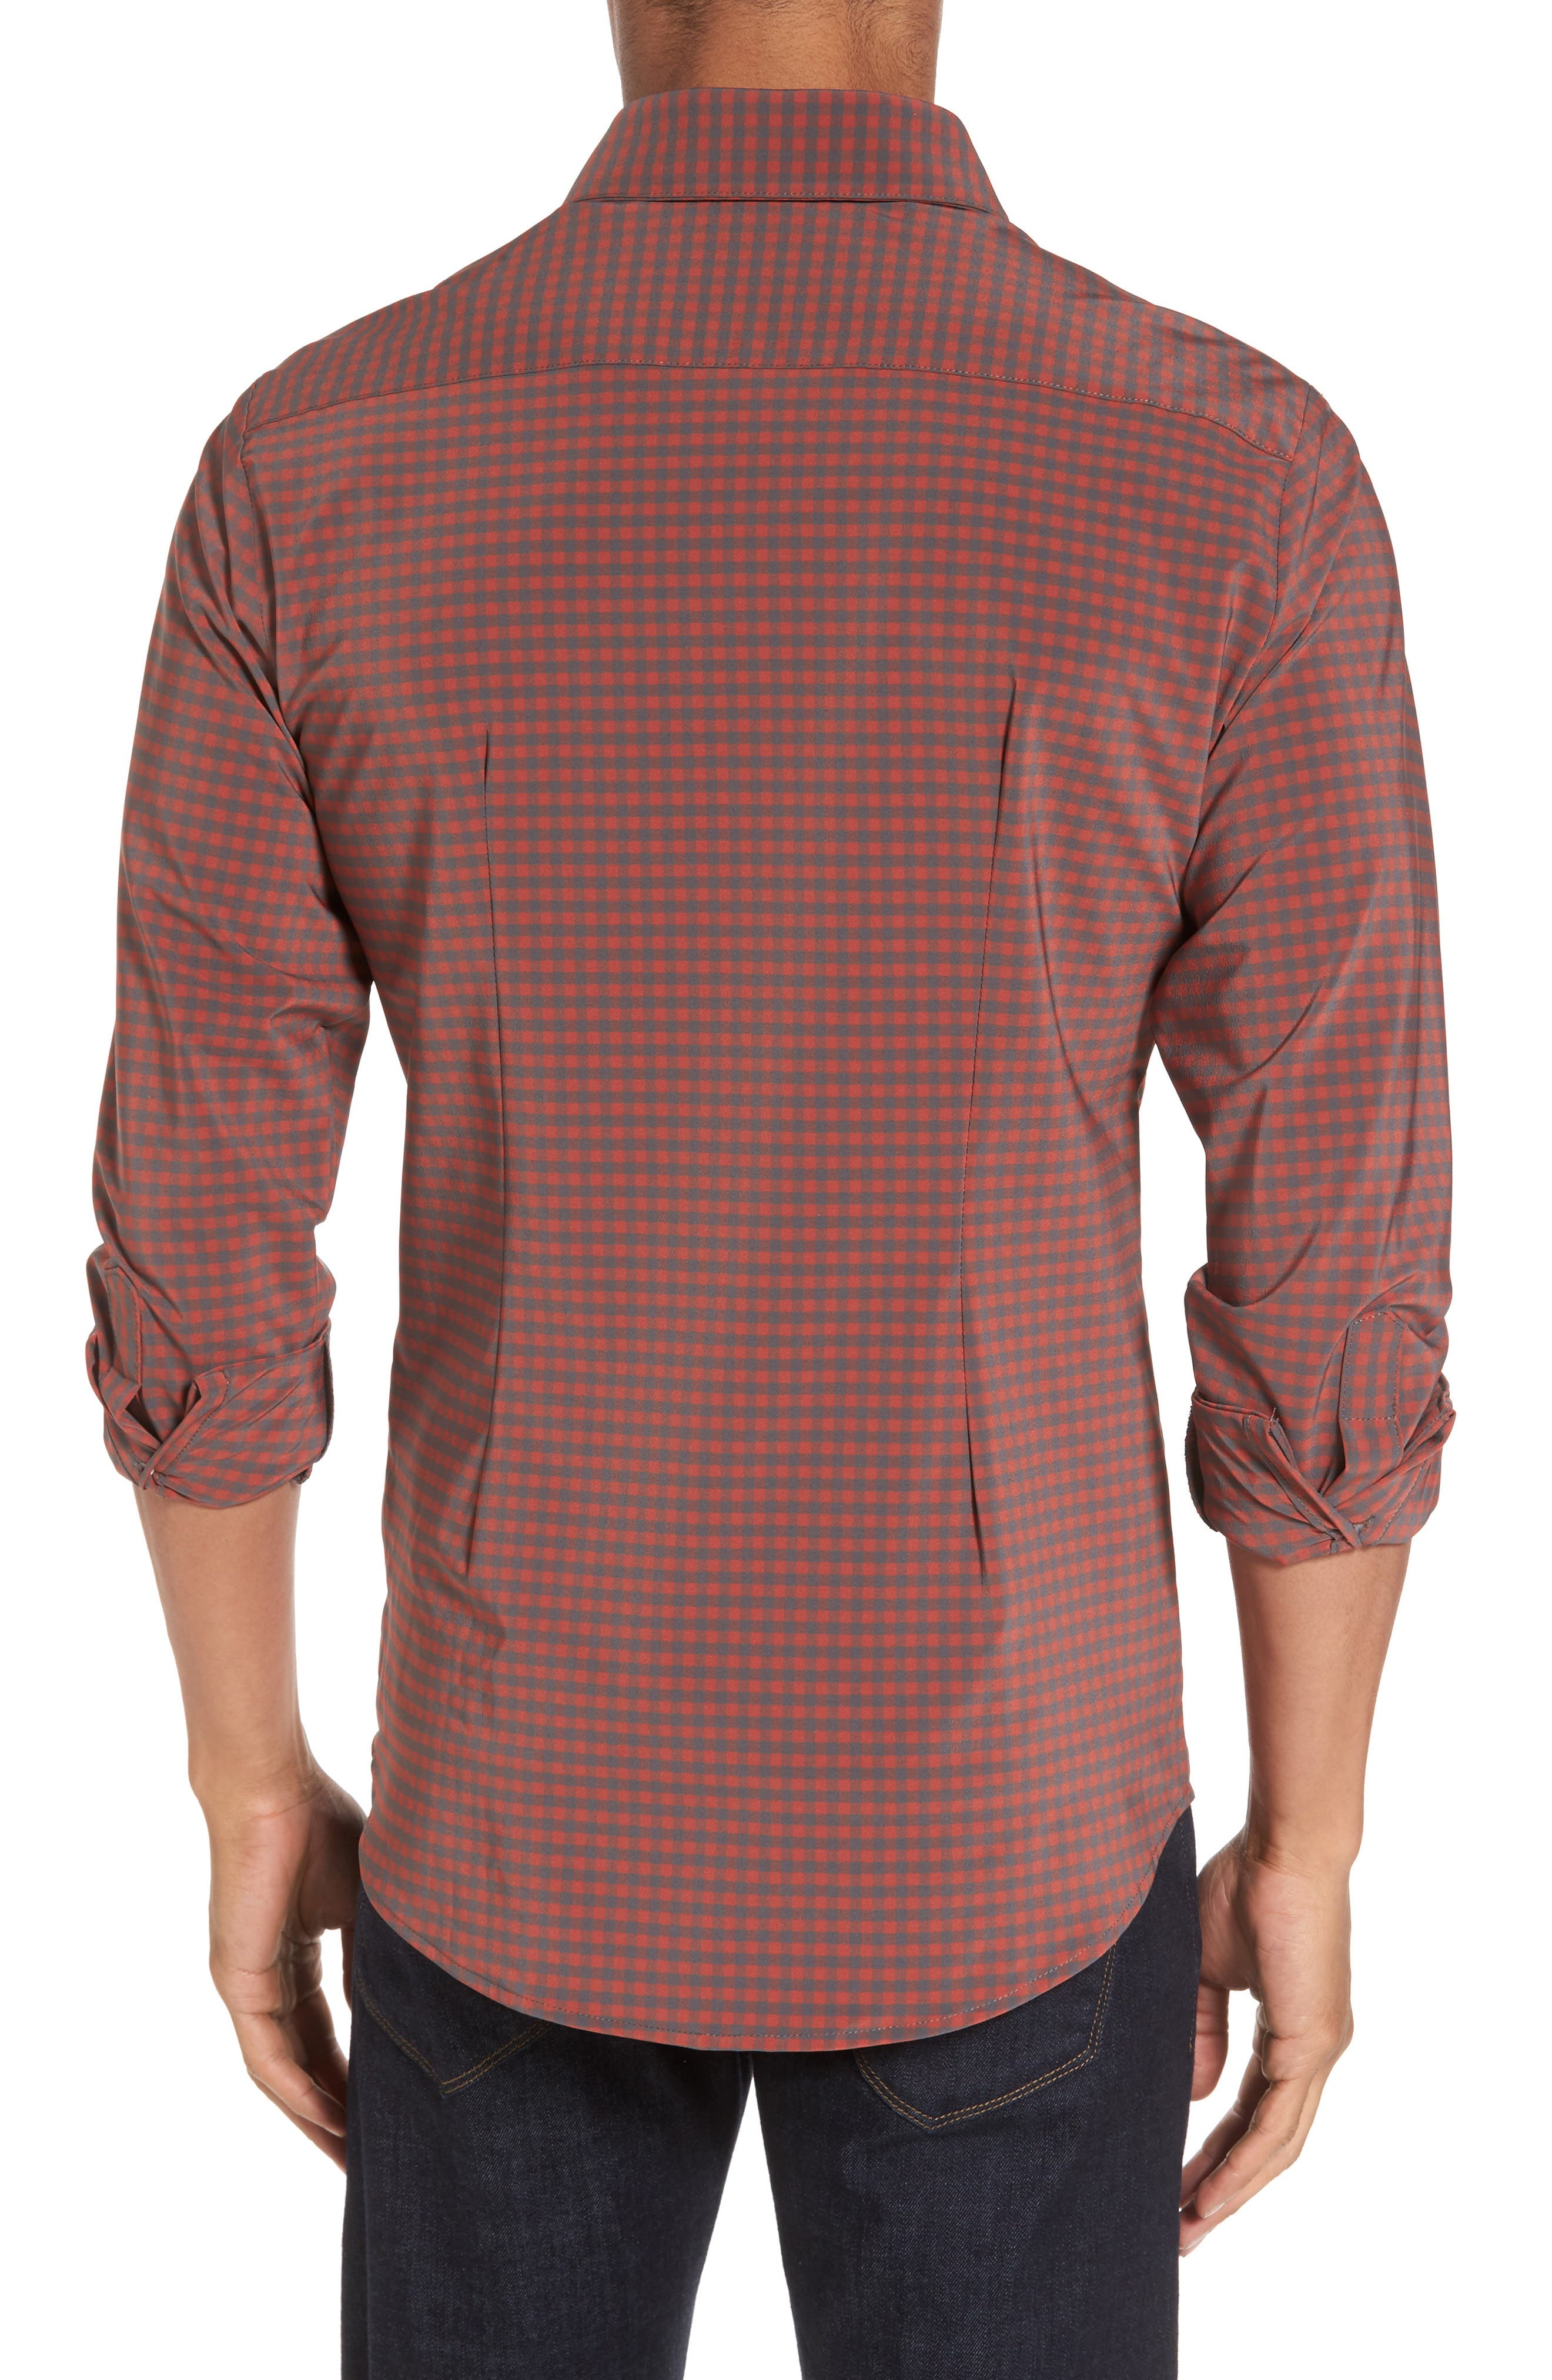 Douglas Grey & Chili Check Sport Shirt,                             Alternate thumbnail 2, color,                             RED